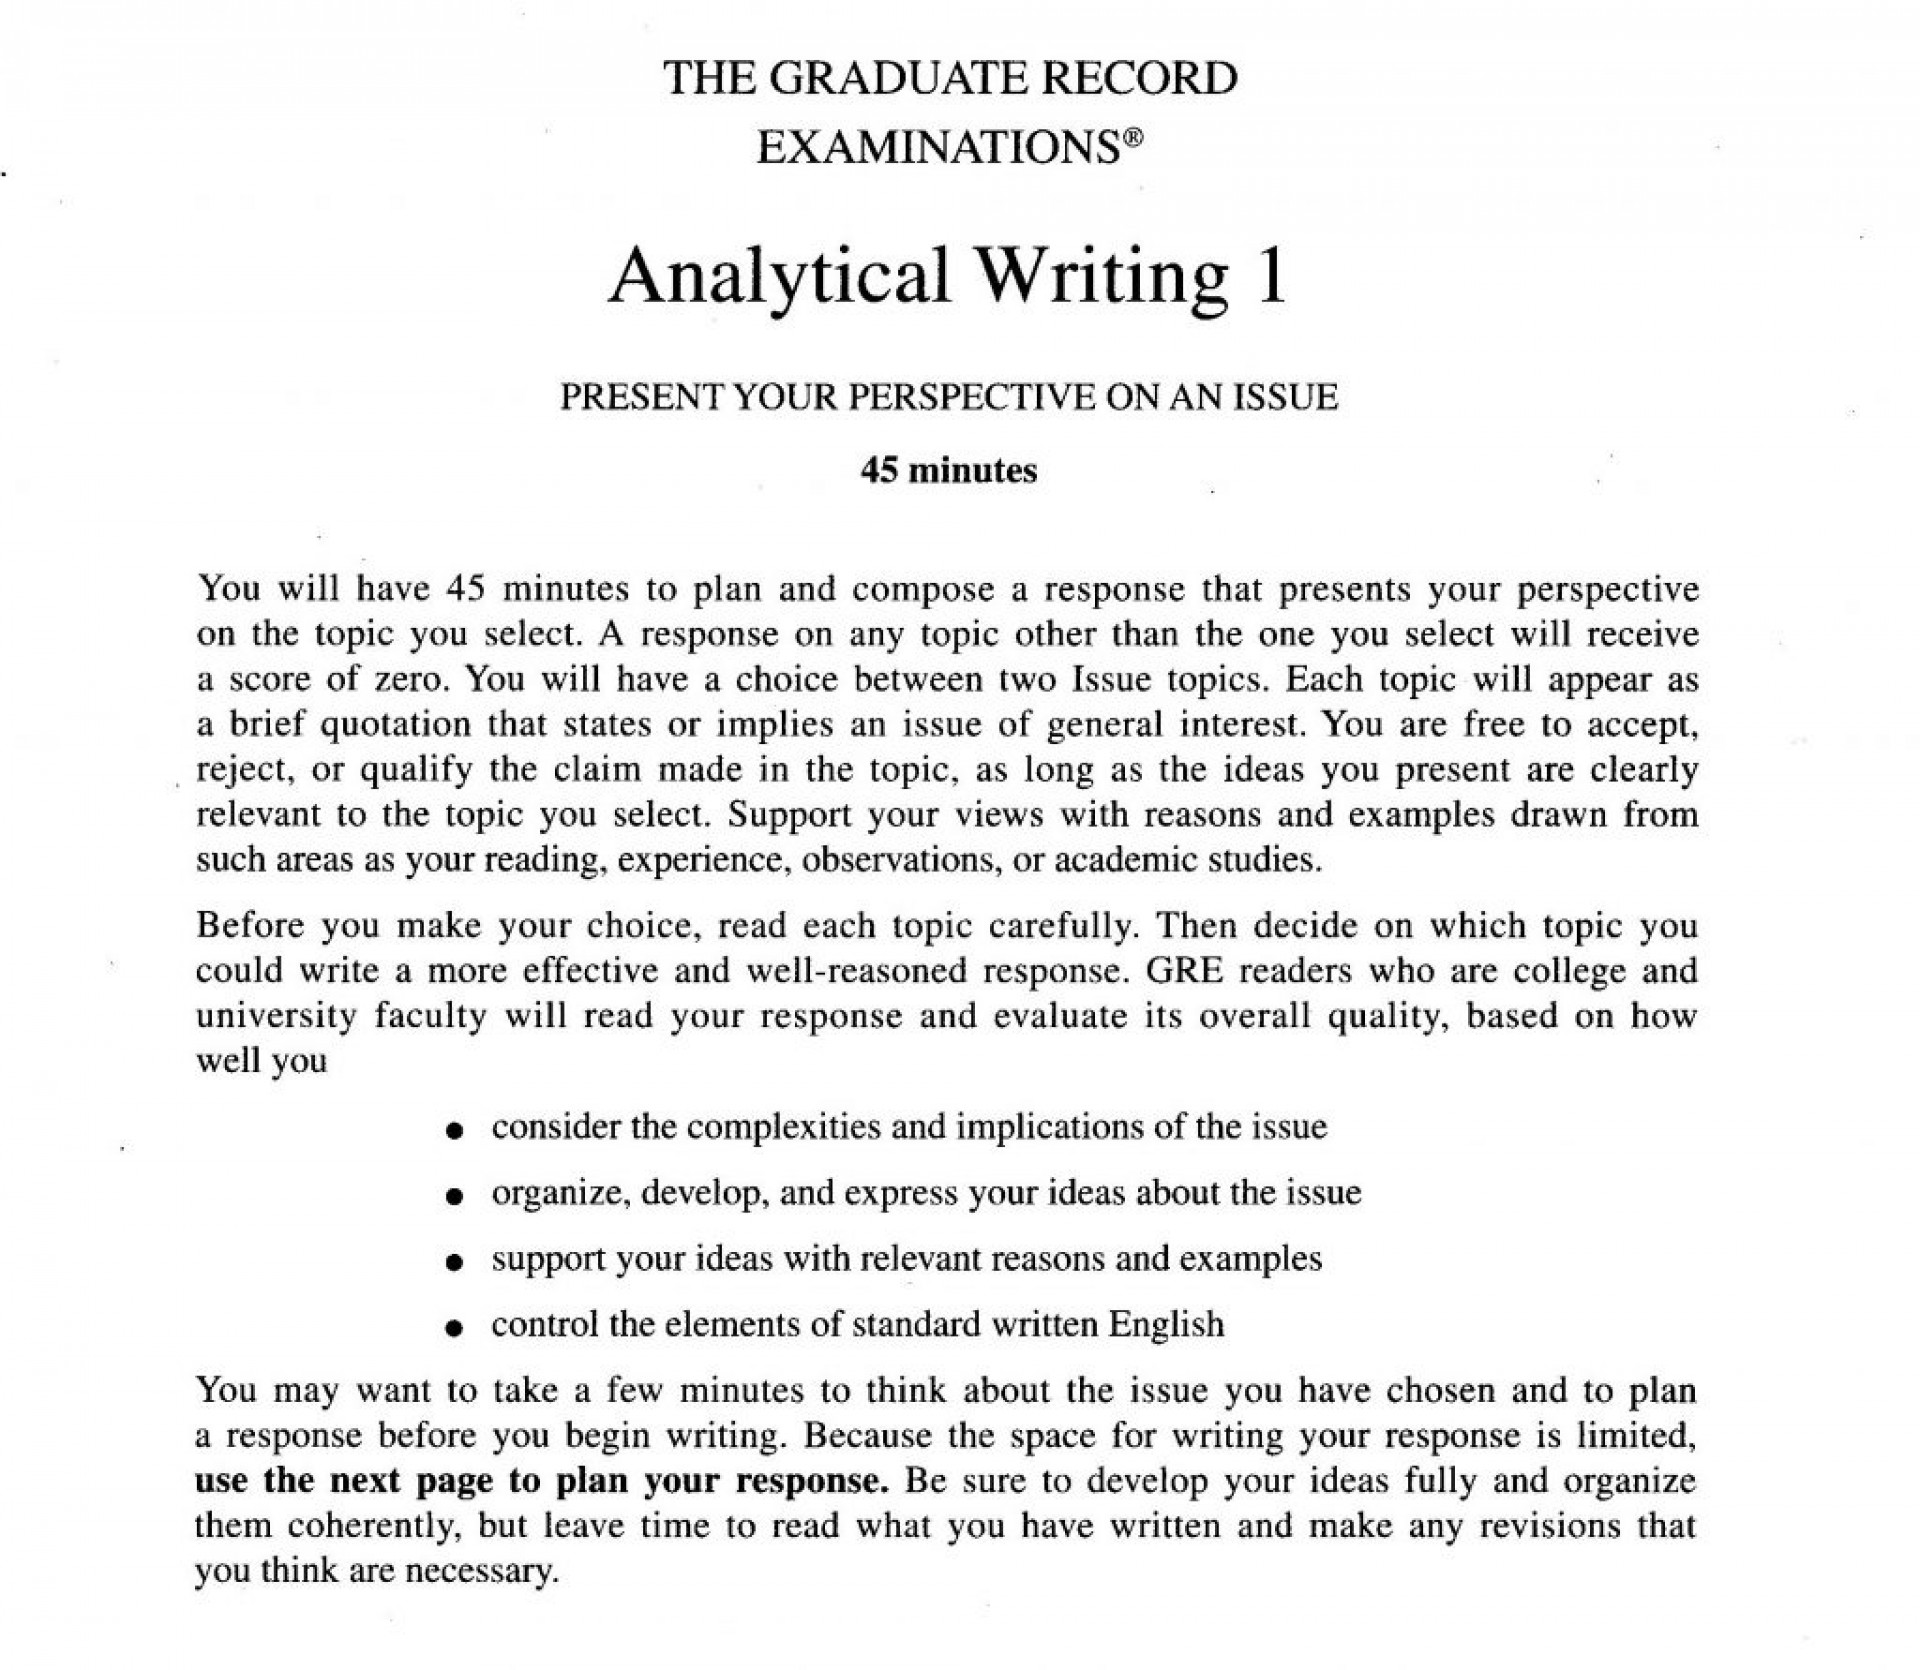 015 Analytical Writing Issue Task Directions For Gre Good Lyric Essays 1024x891 Unique Essay Example Examples Analysis Song 1920